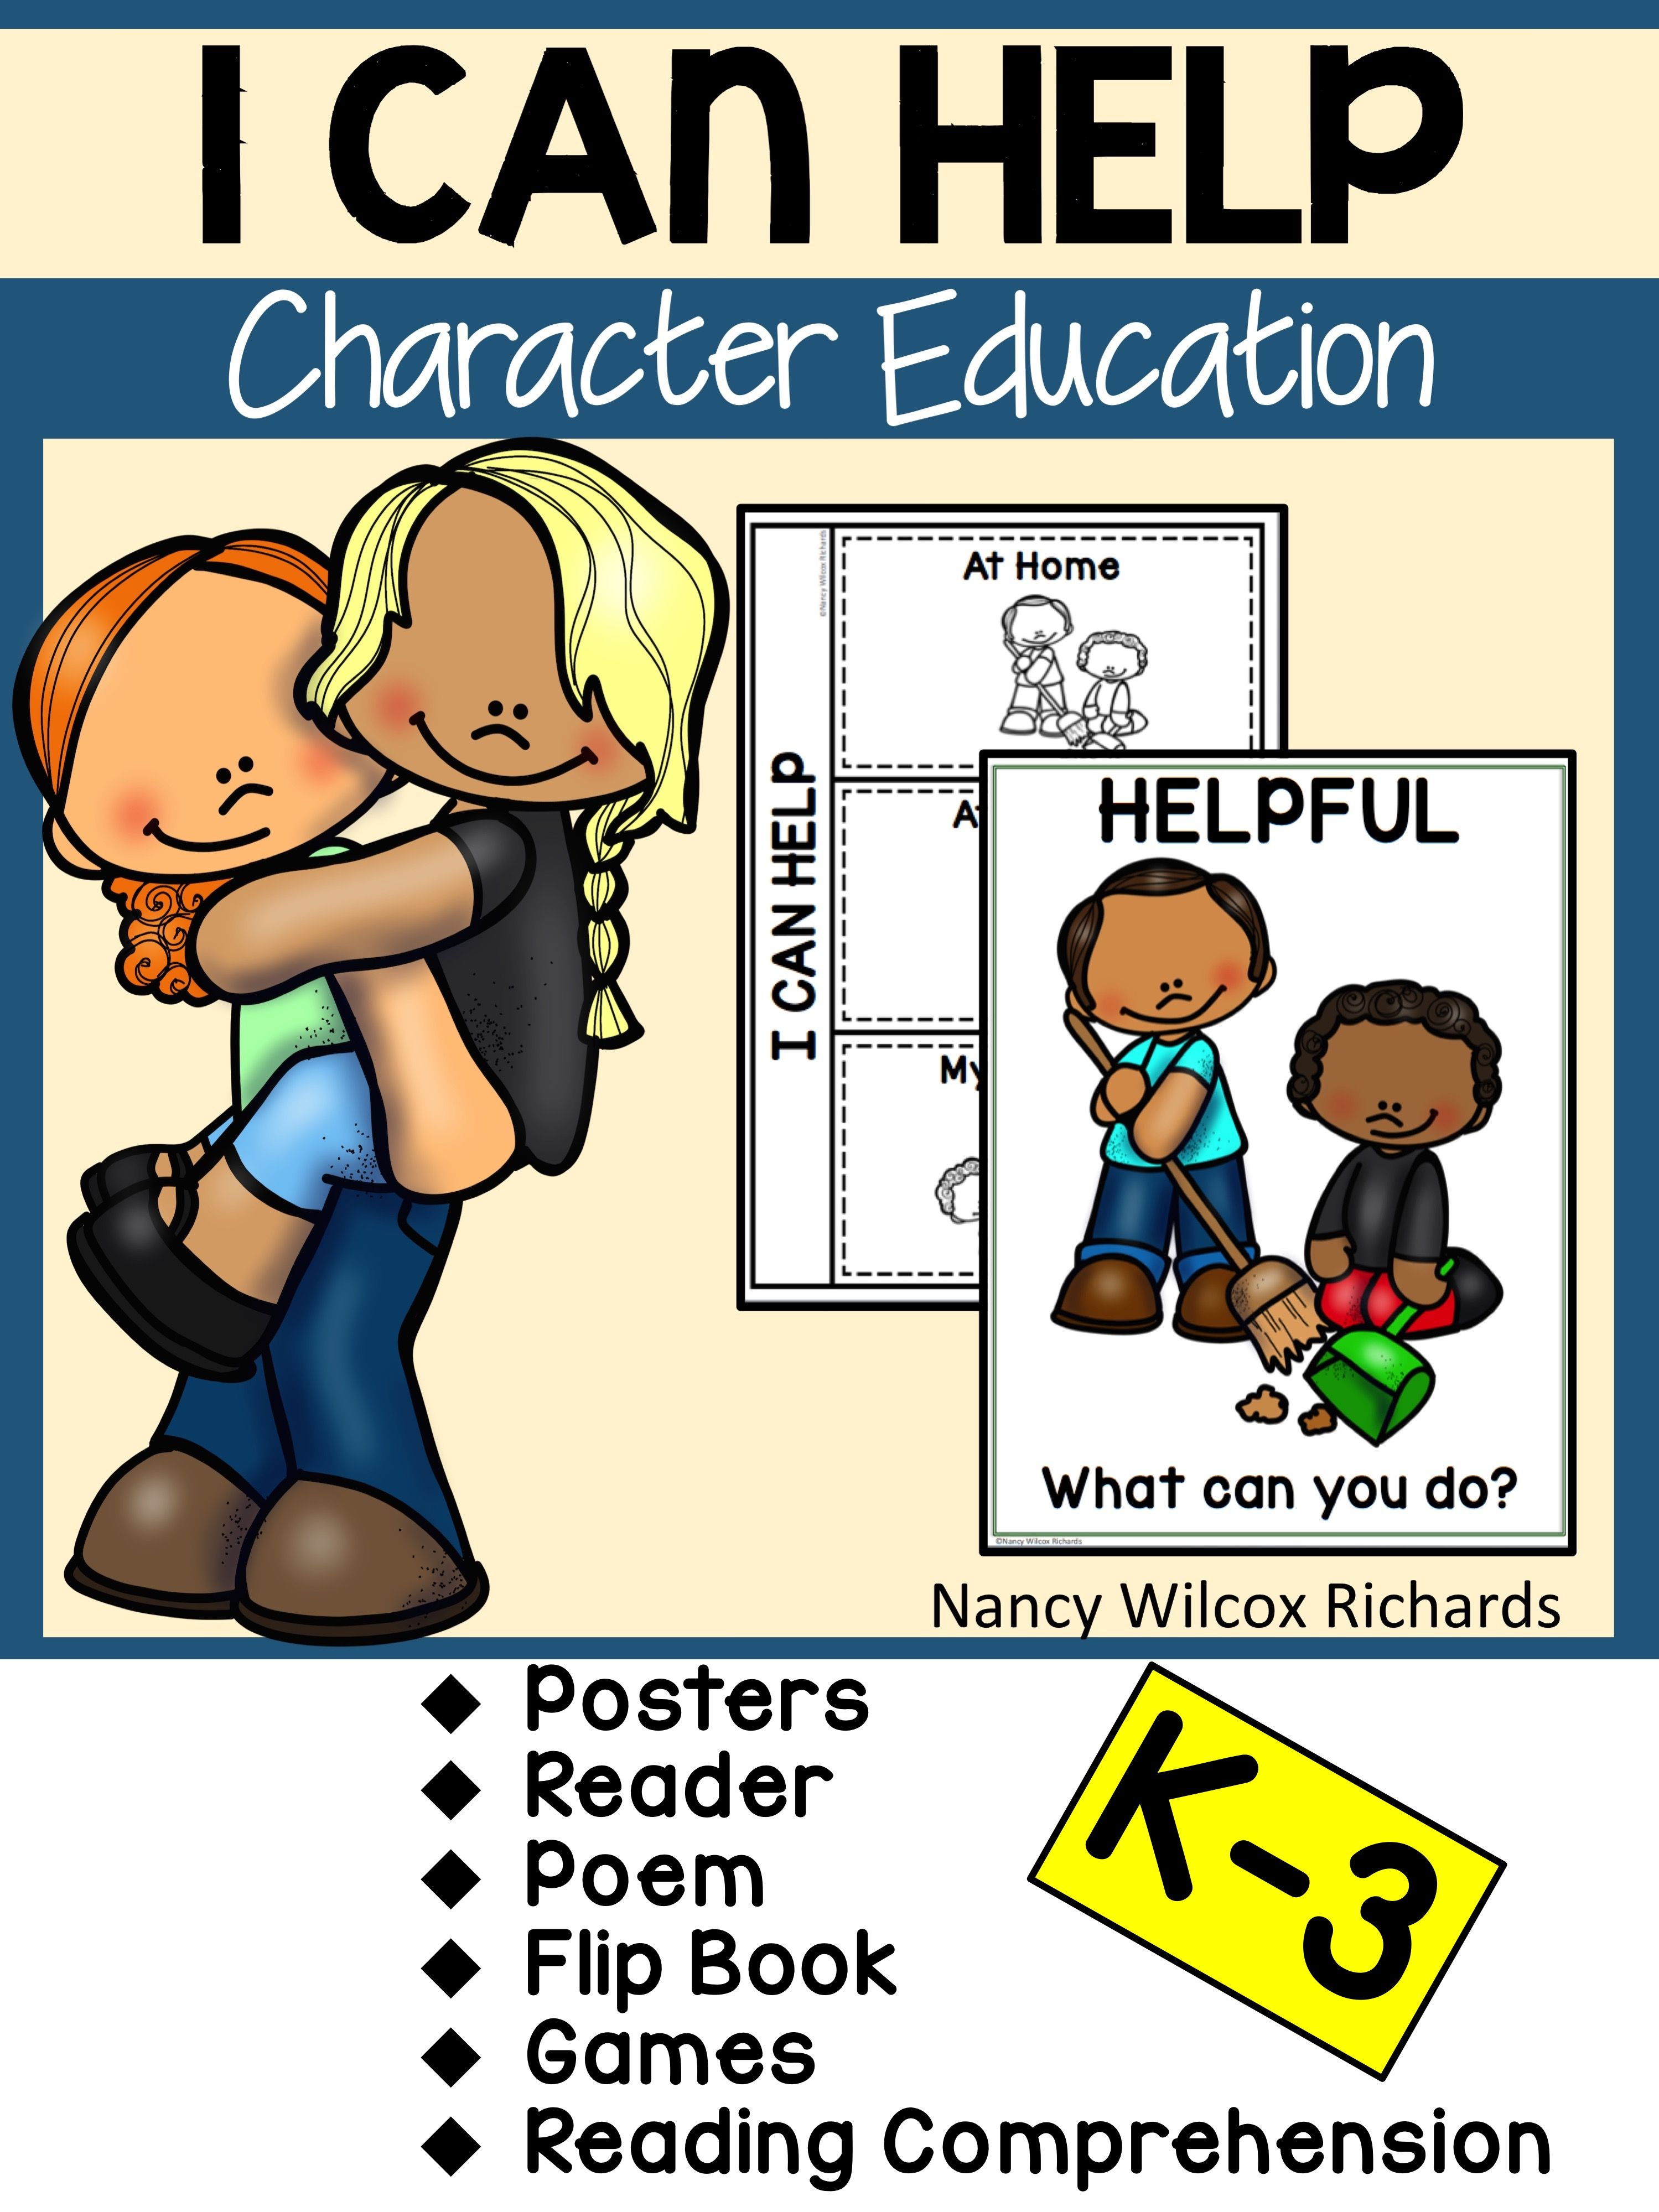 Character Education Helpful